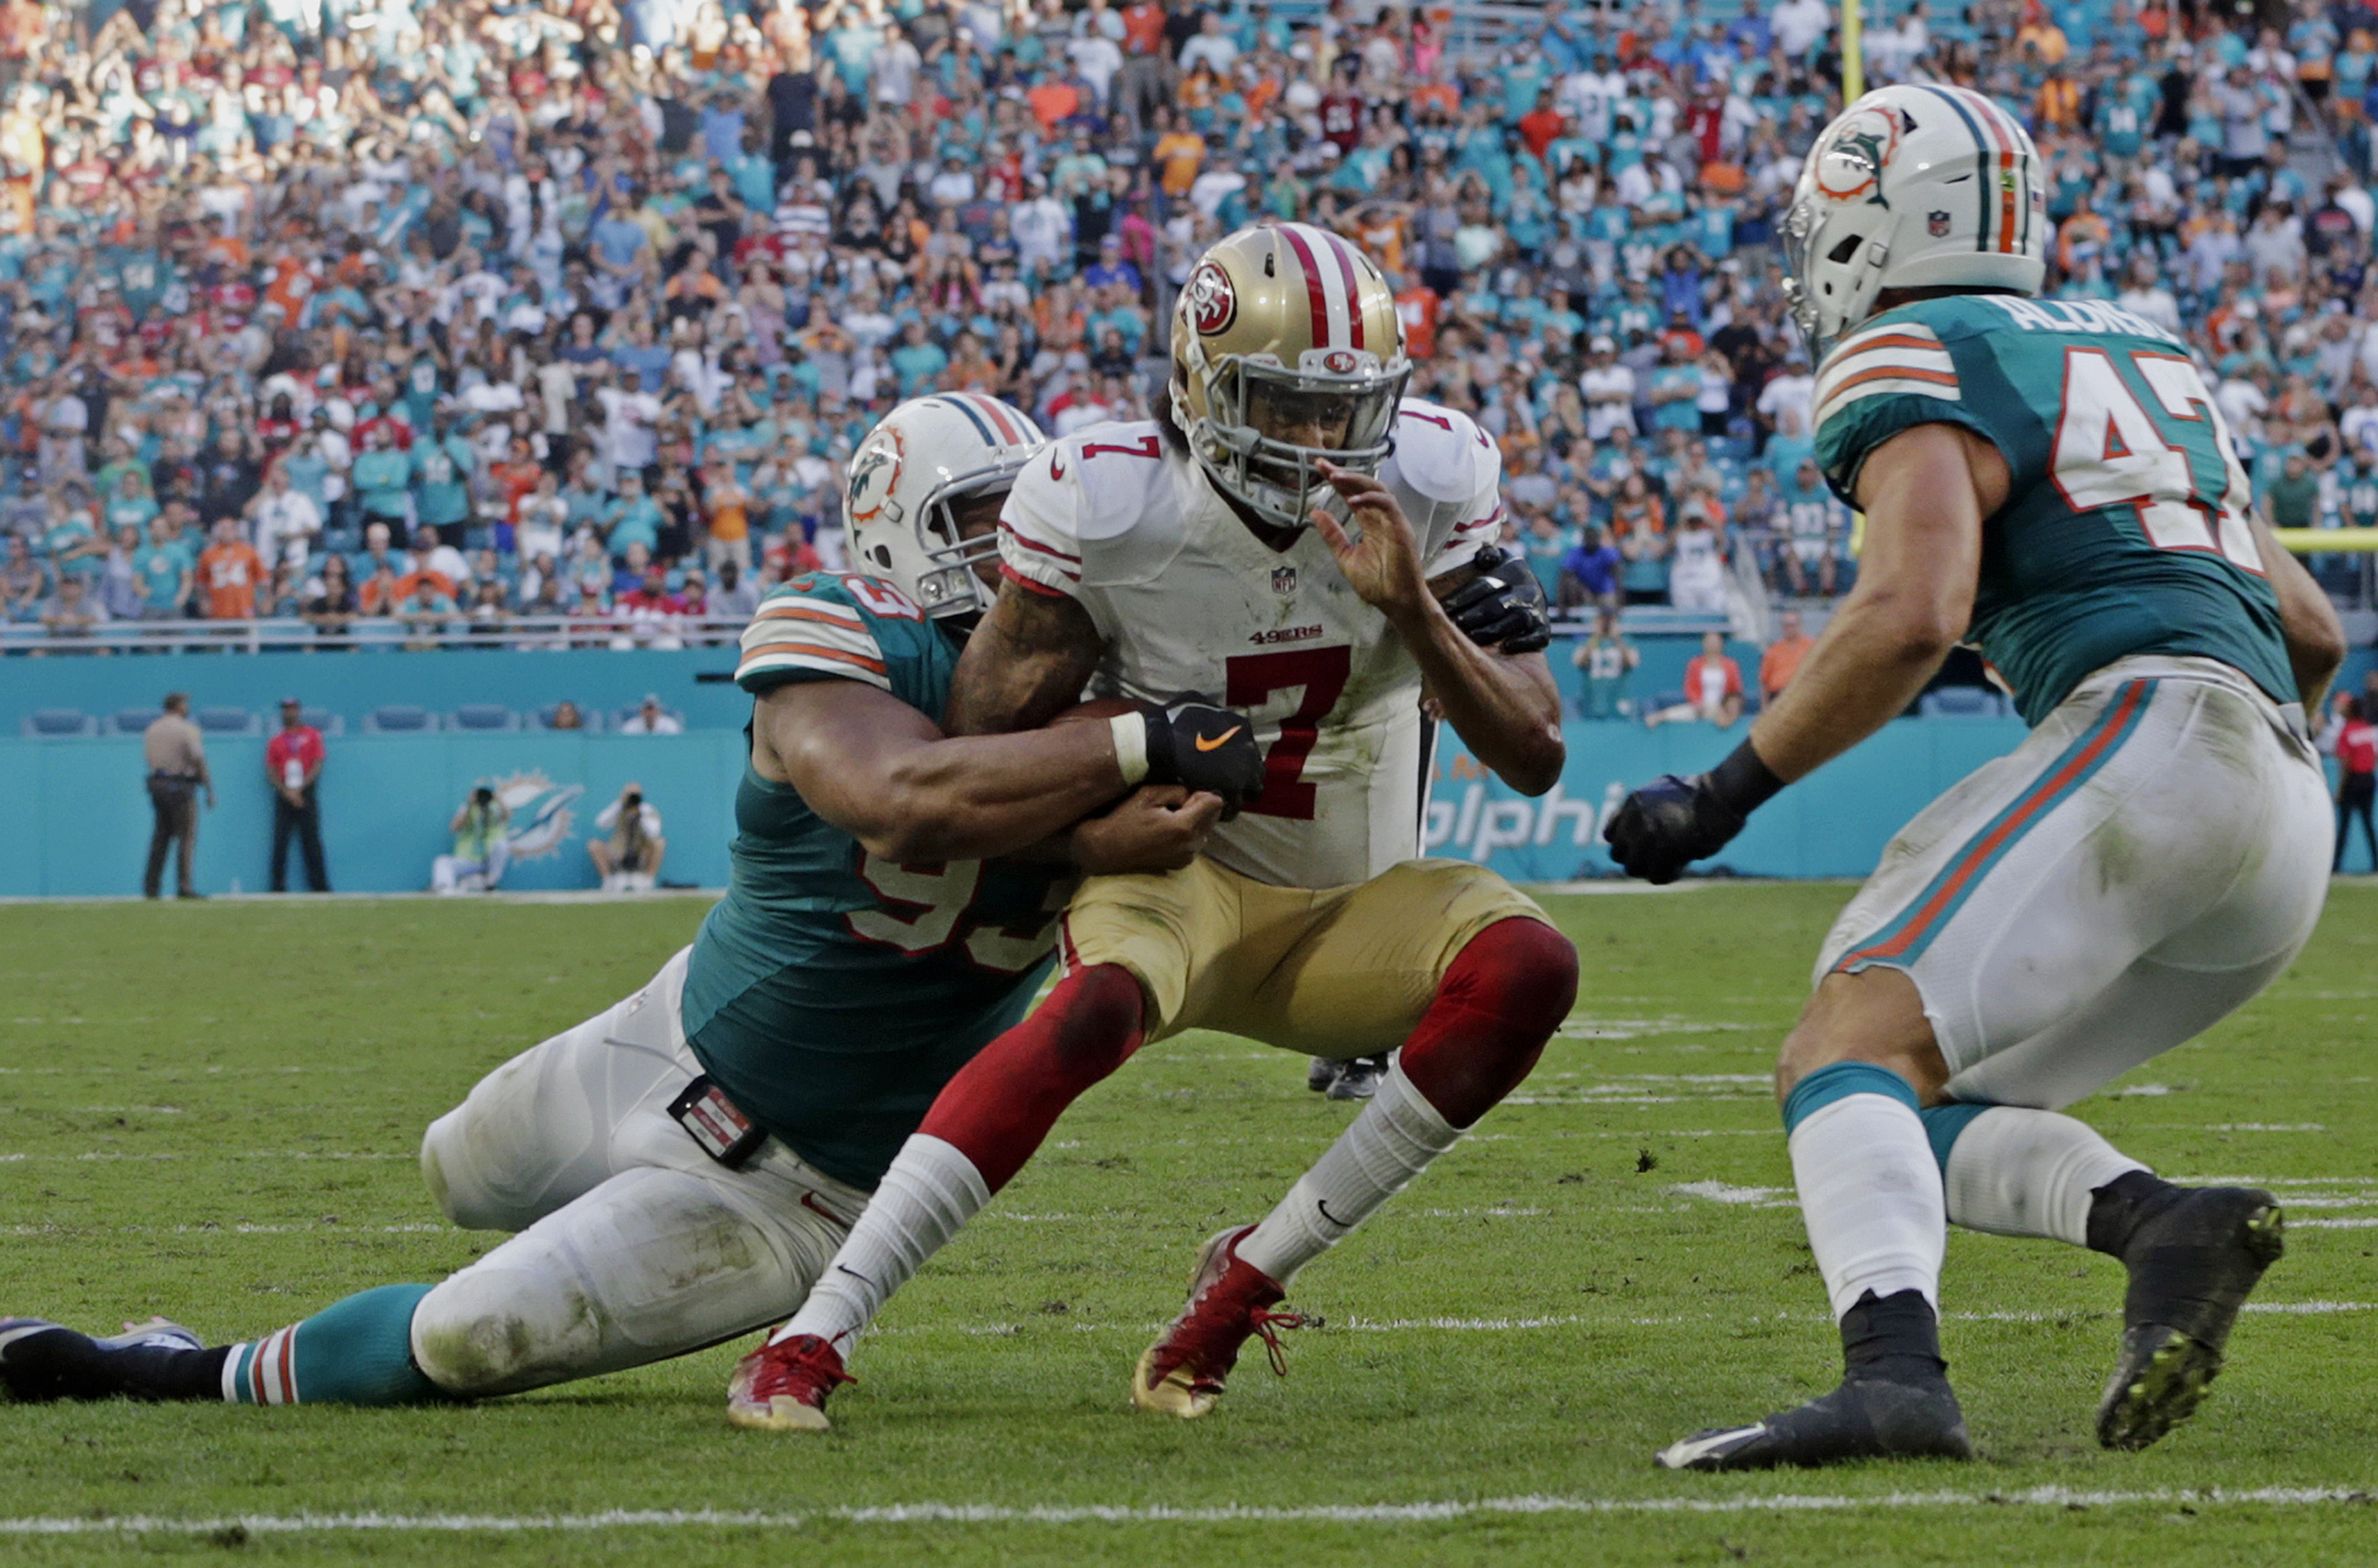 FILE - In this Sunday, Nov. 27, 2016, file photo, San Francisco 49ers quarterback Colin Kaepernick (7) is tackled by Miami Dolphins defensive tackle Ndamukong Suh (93) near the end zone, during the second half of an NFL football game, in Miami Gardens, Fl